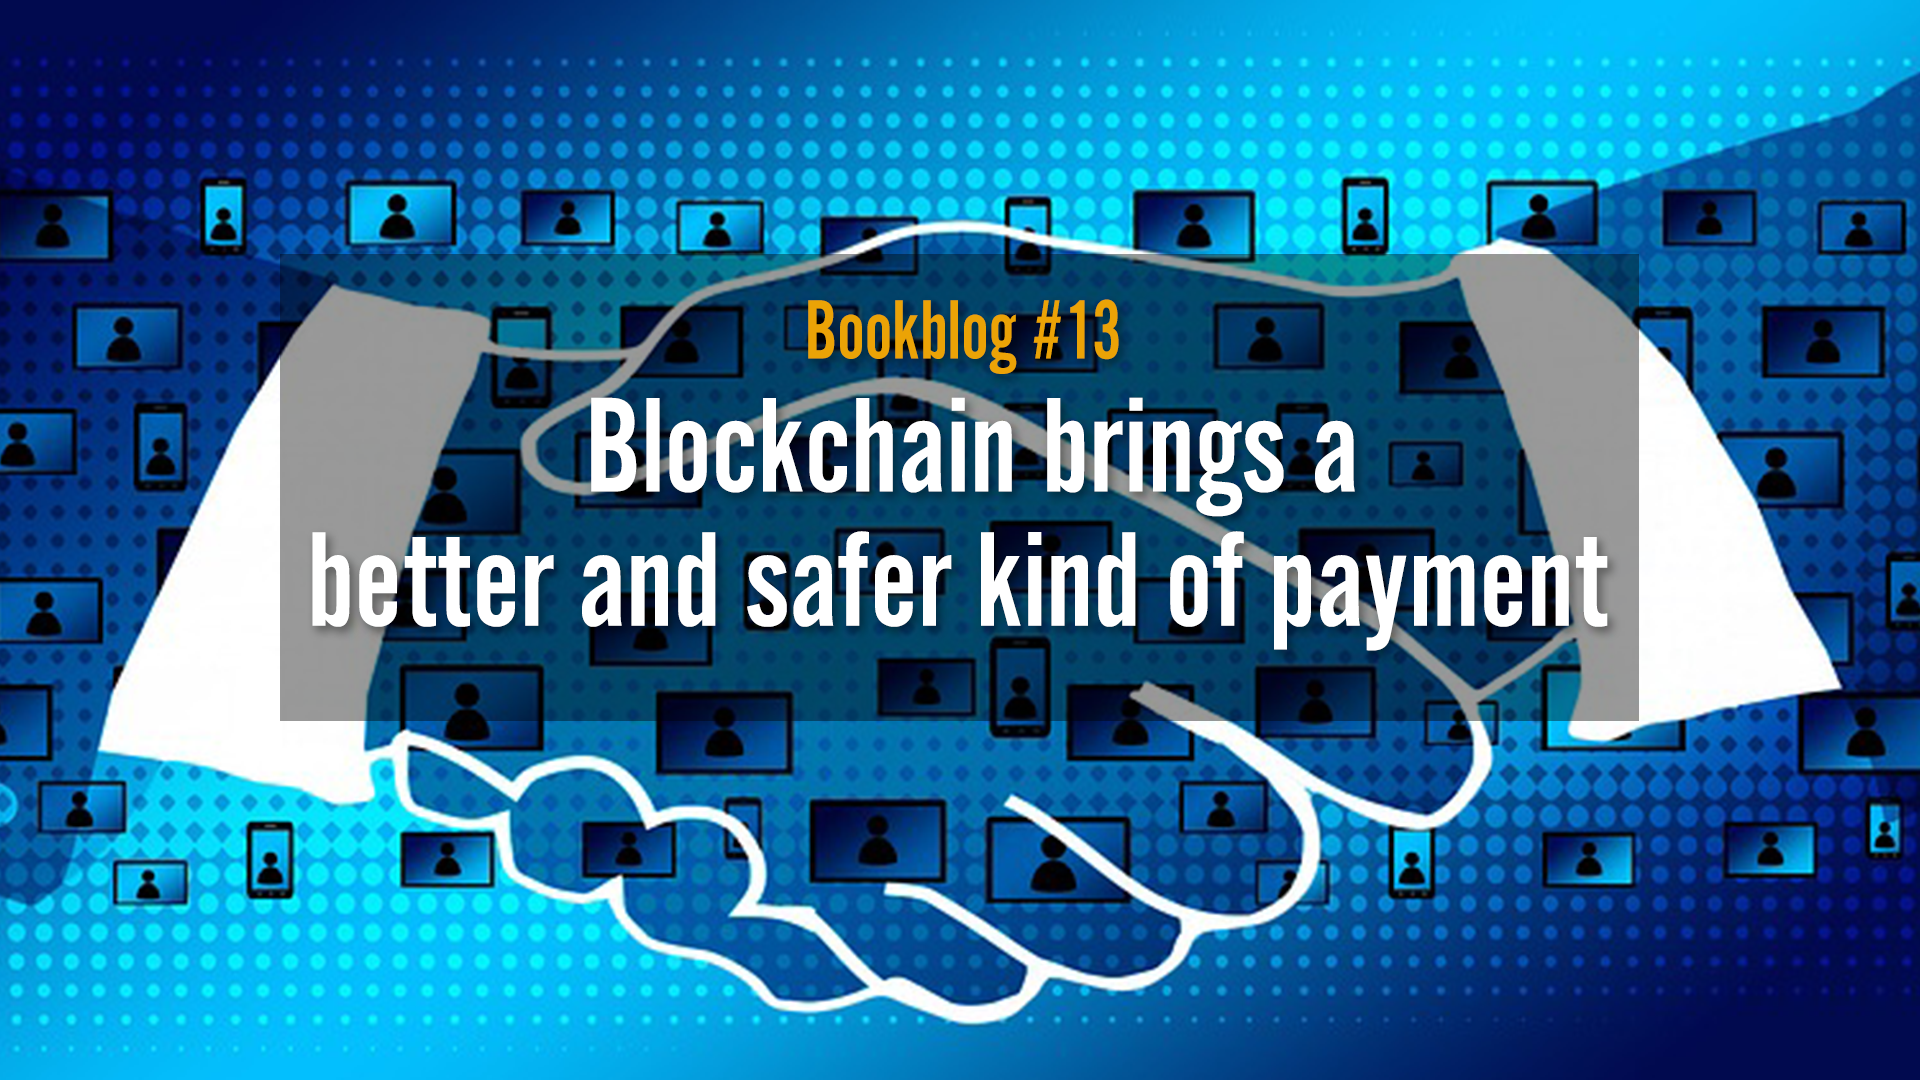 Blockchain brings a better and safer kind of payment